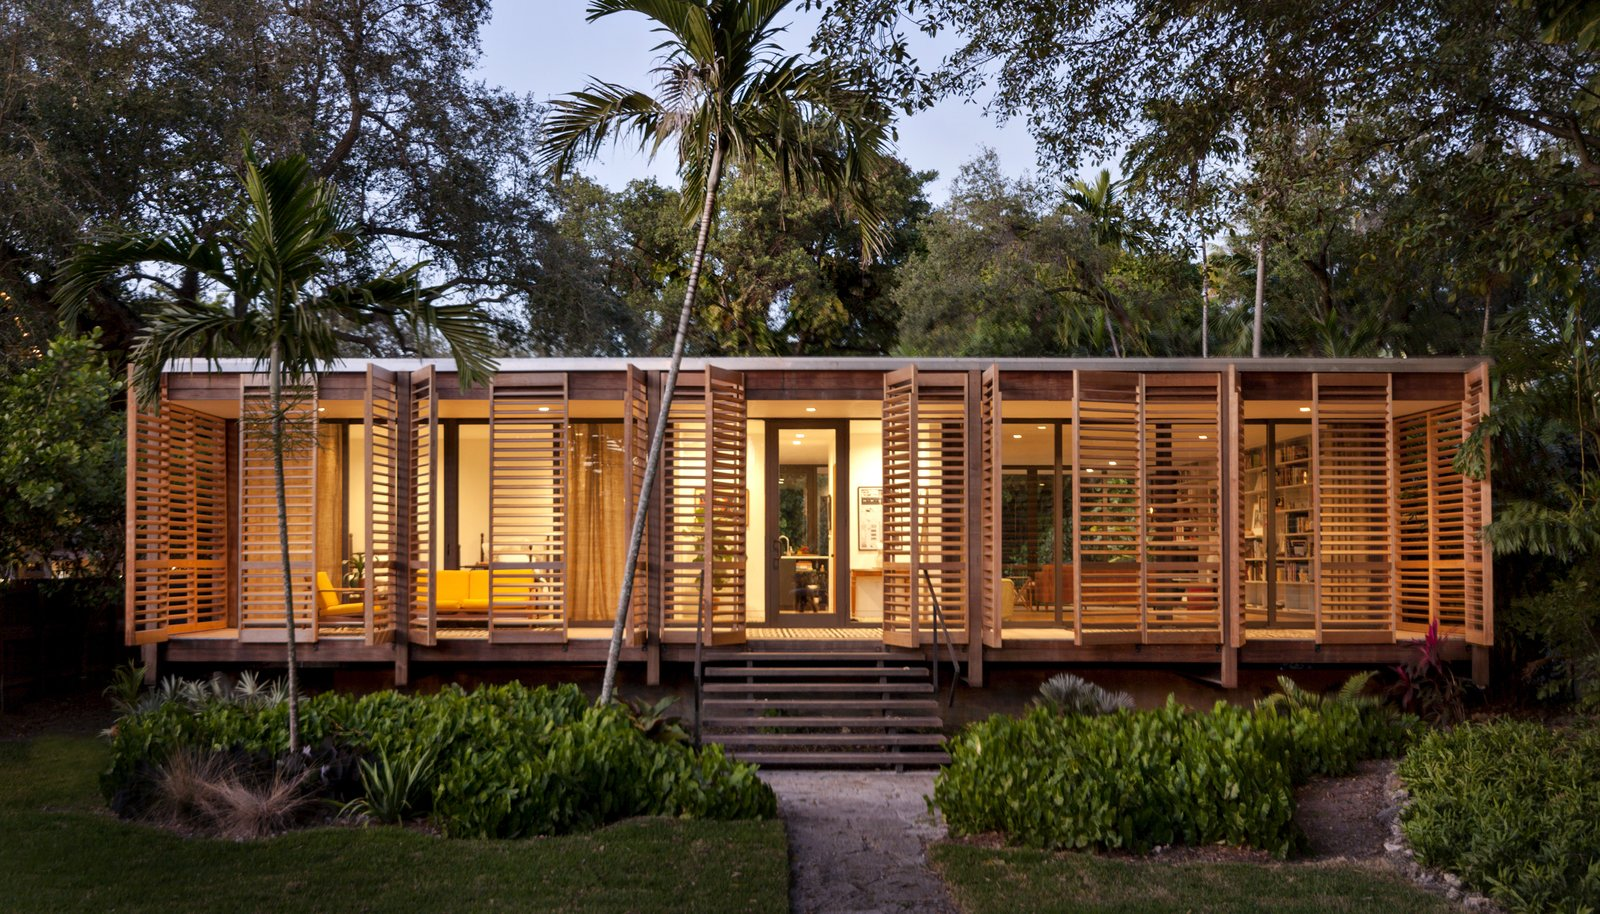 The 1,500-square-foot home features a striking interplay of sharp glass and soft wood shutters, creating a simple and practical building that's rich in cultural heritage. The home takes inspiration from many native building styles, including postwar tropical modernism, glass pavilion typology, and Florida cracker architecture. The dense ipe wood that clads the exterior and columns was chosen to withstand potential termite attacks and the damp tropical climate.  Mid Century Modern from Brillhart House